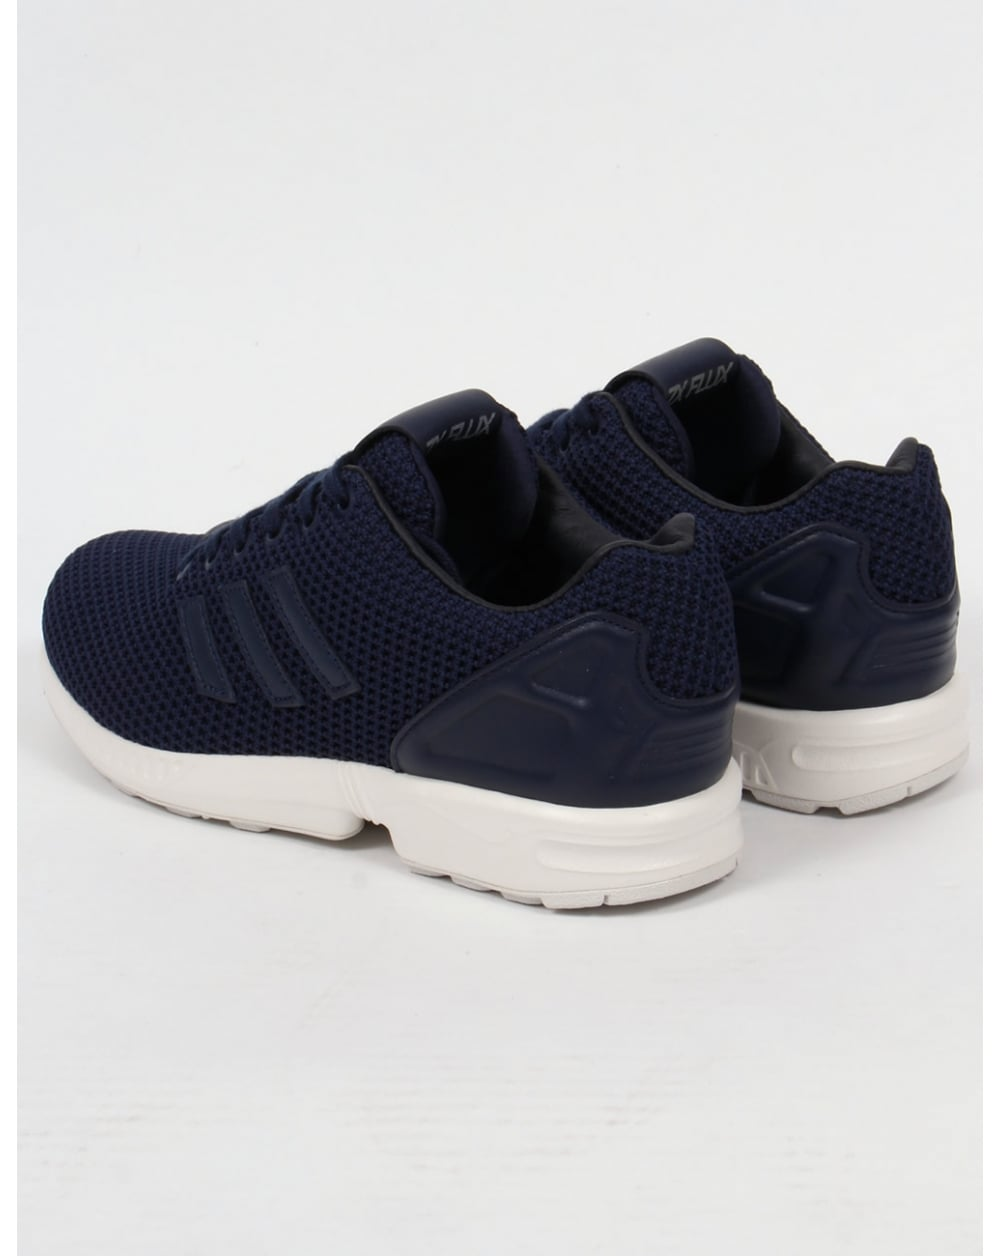 info for 62ef9 bab77 Adidas ZX Flux Trainers Navy/Navy/White